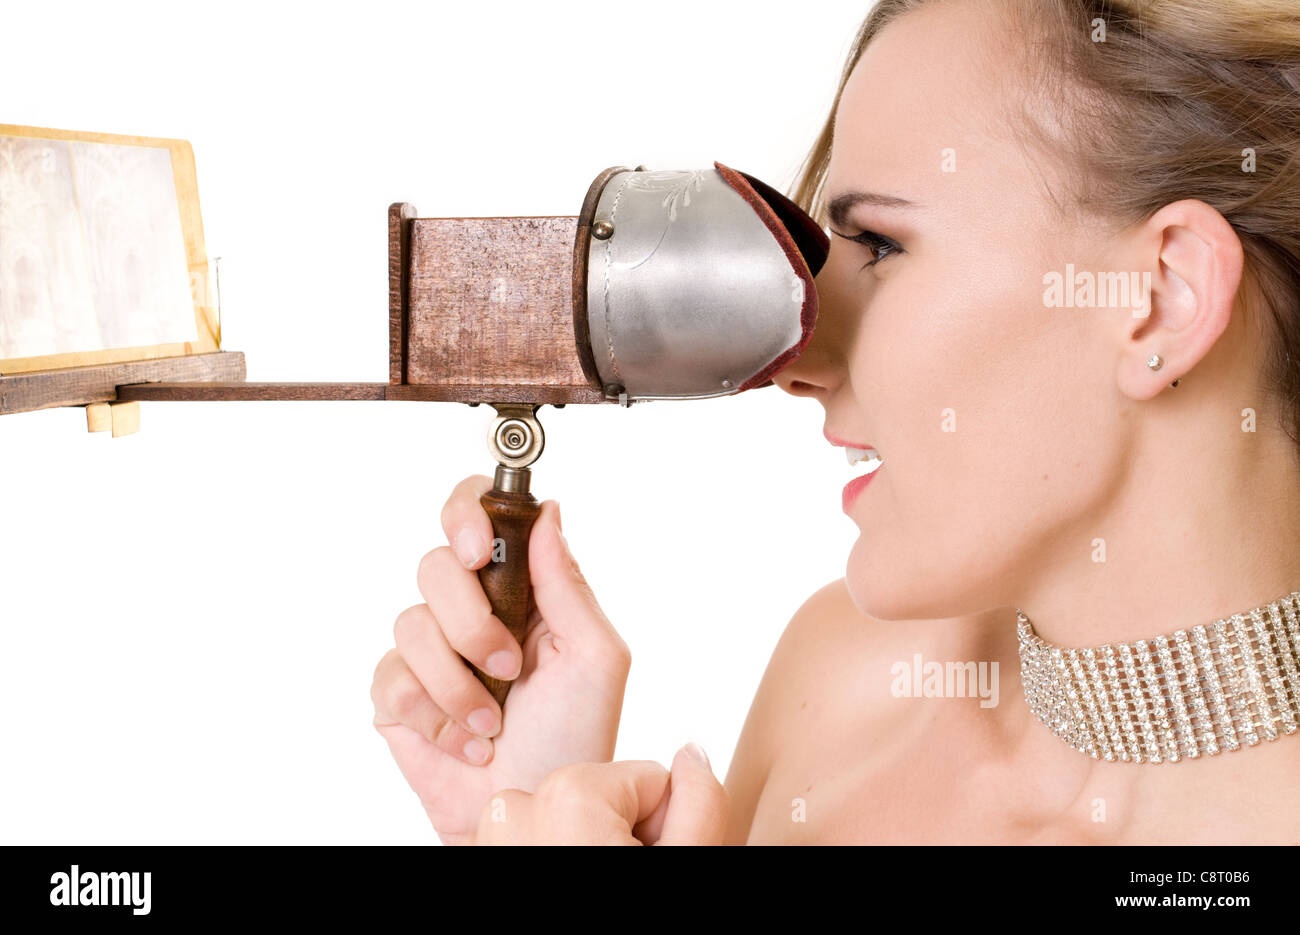 Beautiful Model Gazing at a 3D Image Through a 19th Century Stereopticon. (images replaced with blurry images of Stock Photo